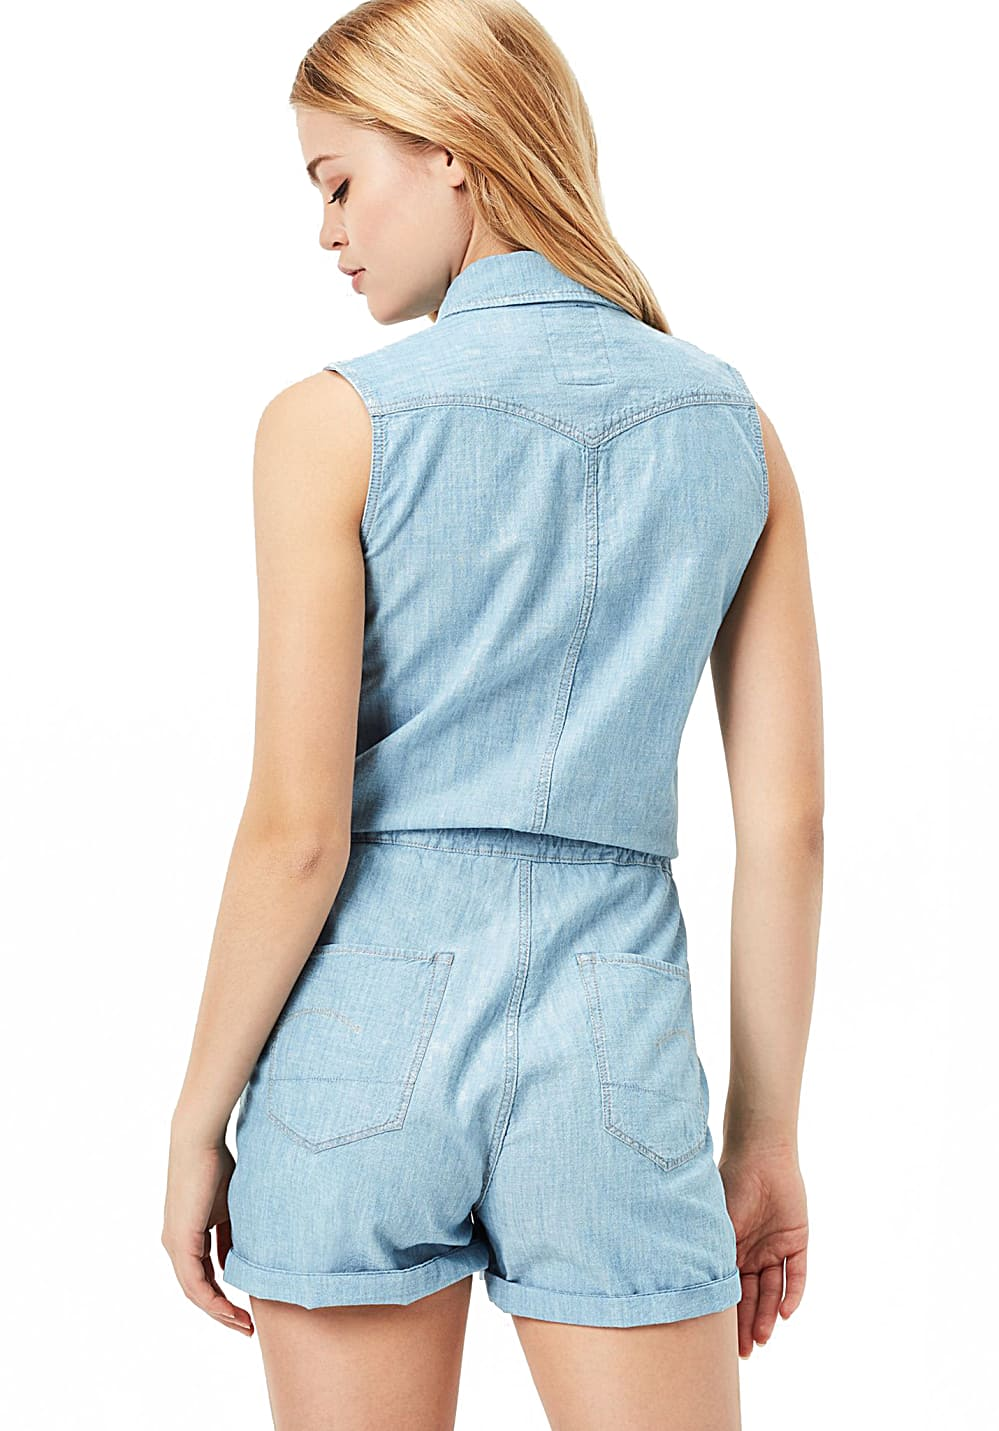 976b6efd4fd4 Next. This product is currently out of stock. G-STAR. Tacoma Boilersuit  Sless - Jumpsuit for Women. €129.95